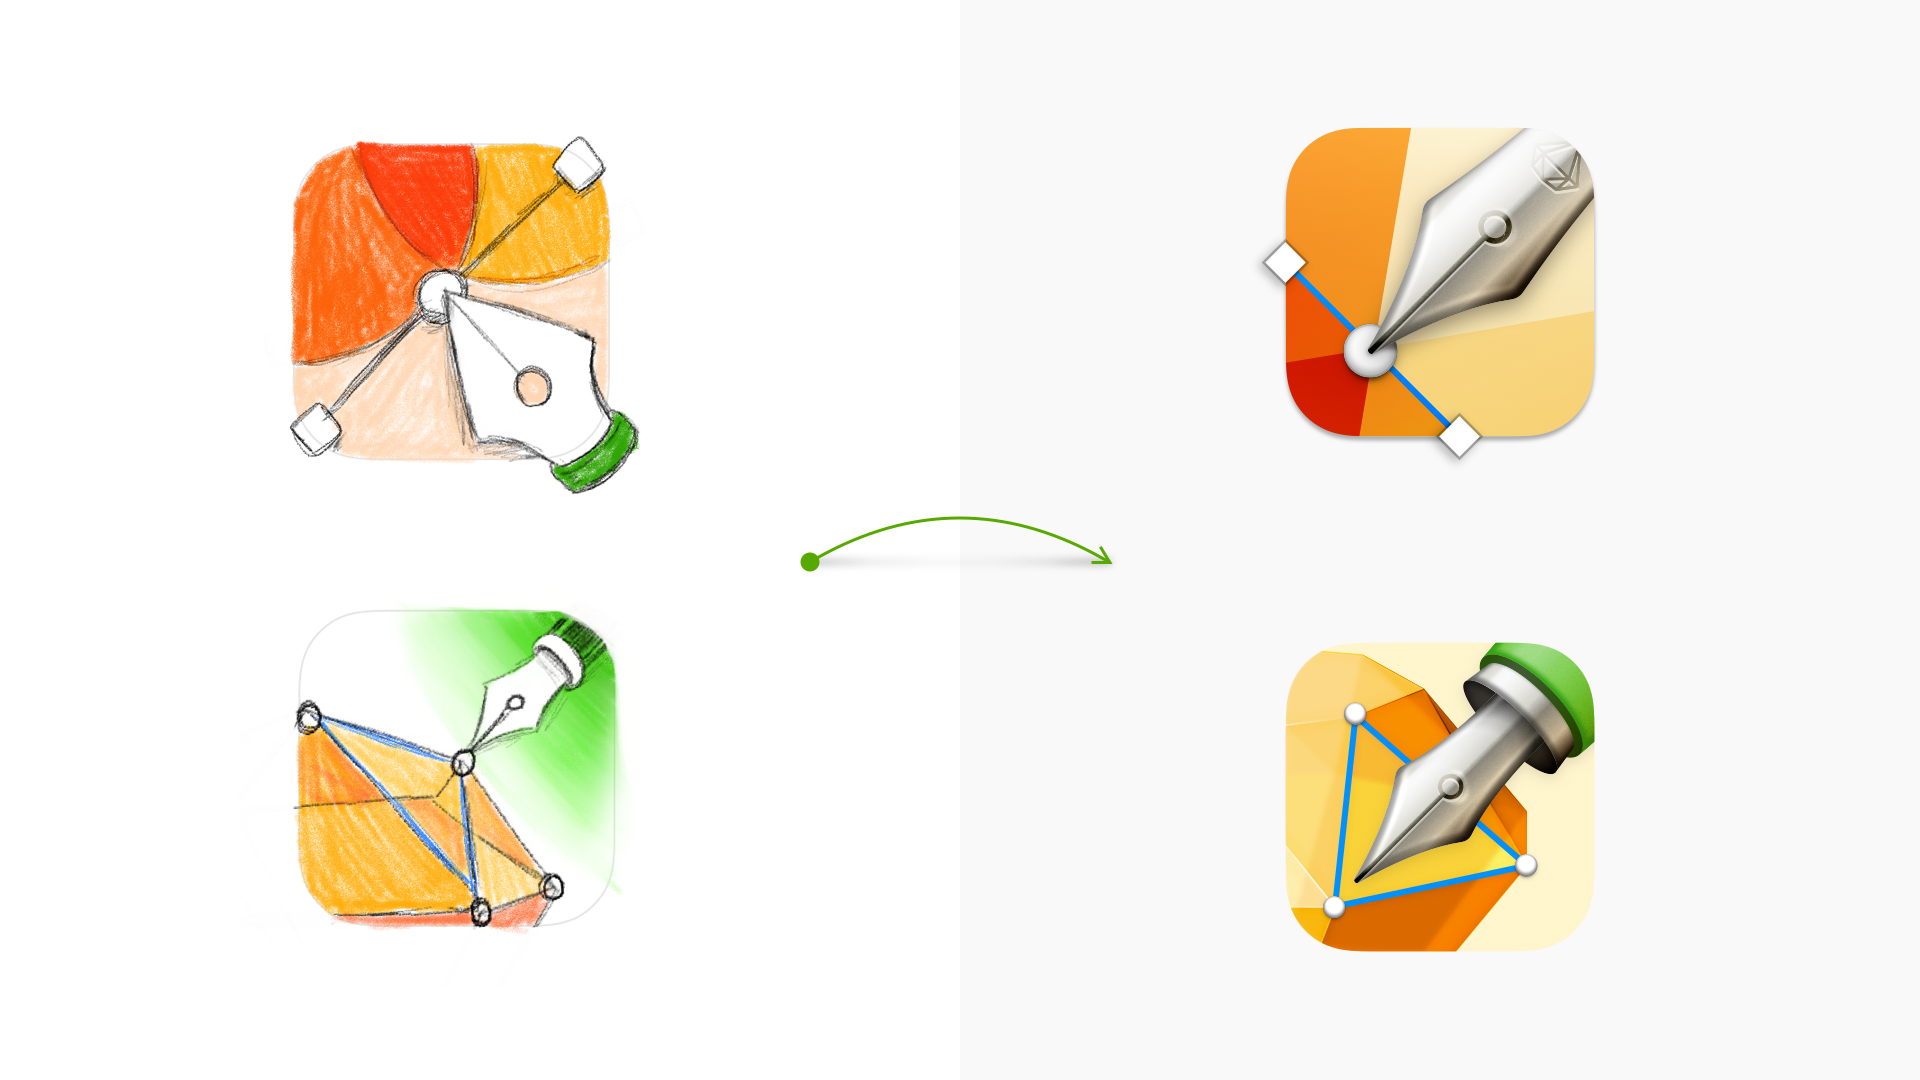 An image showing some initial sketches of icons with pens and nibs alongside vector versions of those icon ideas.